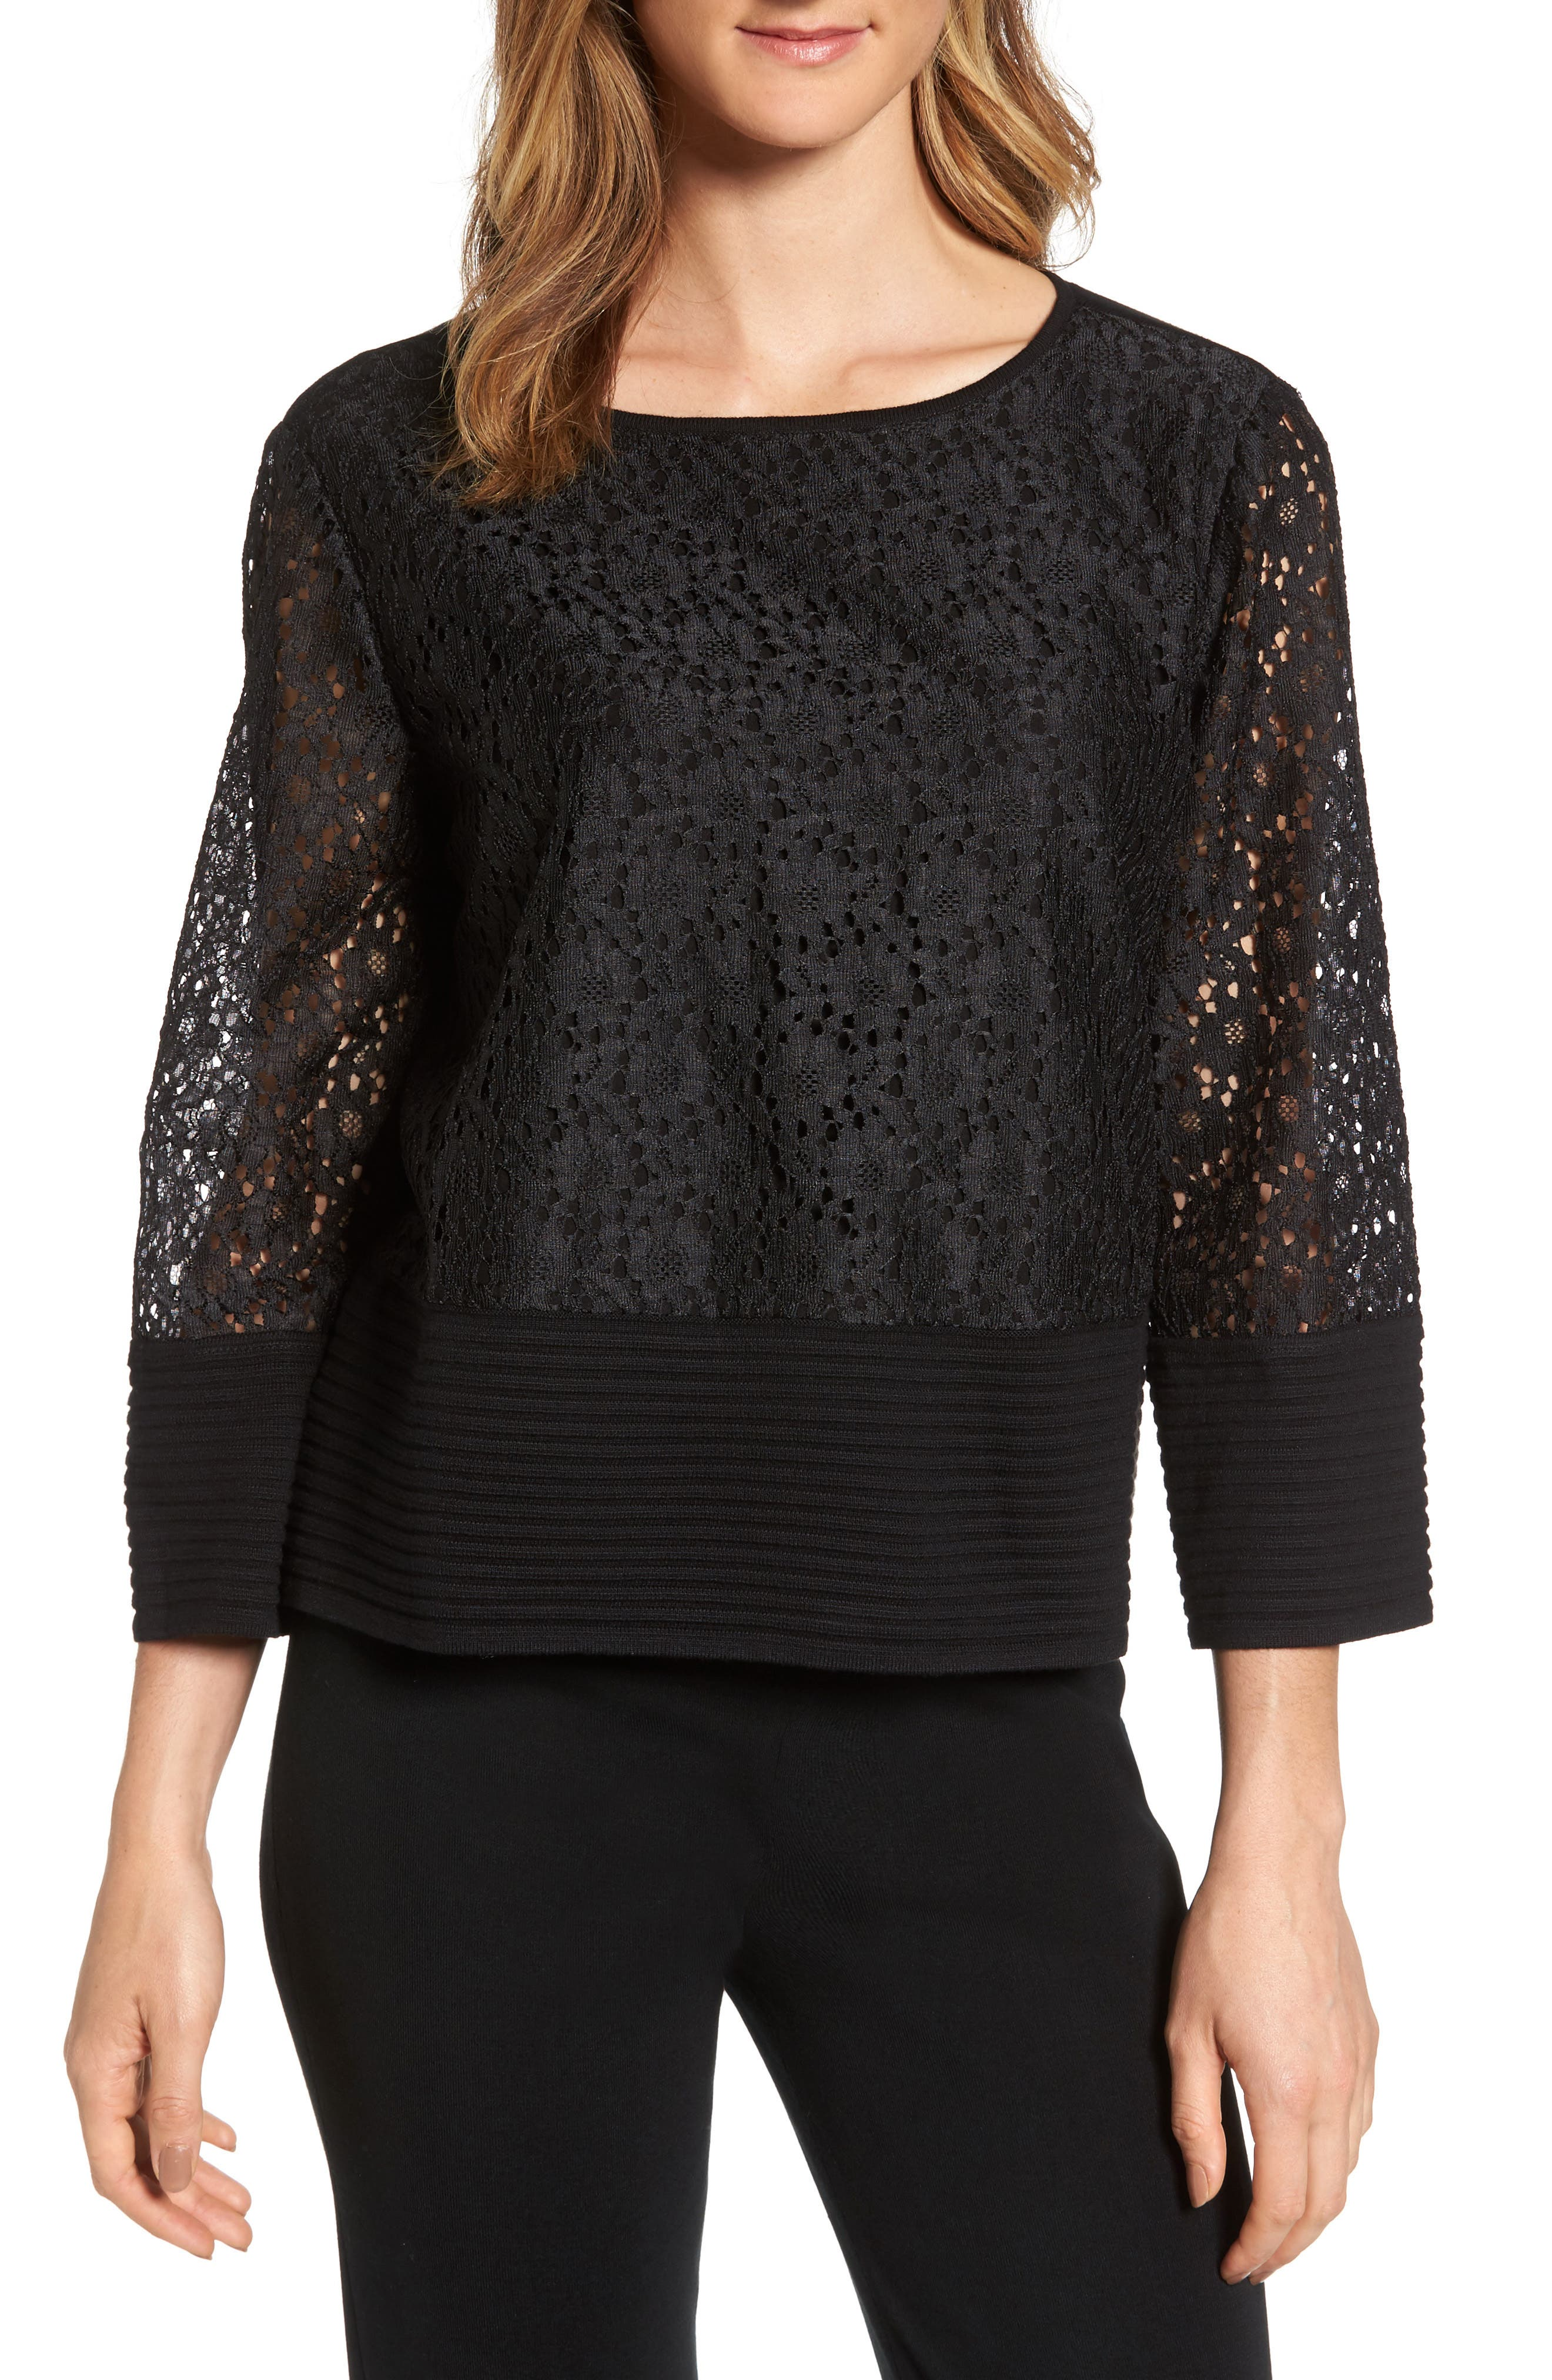 Alternate Image 1 Selected - Ming Wang Lace & Knit Top